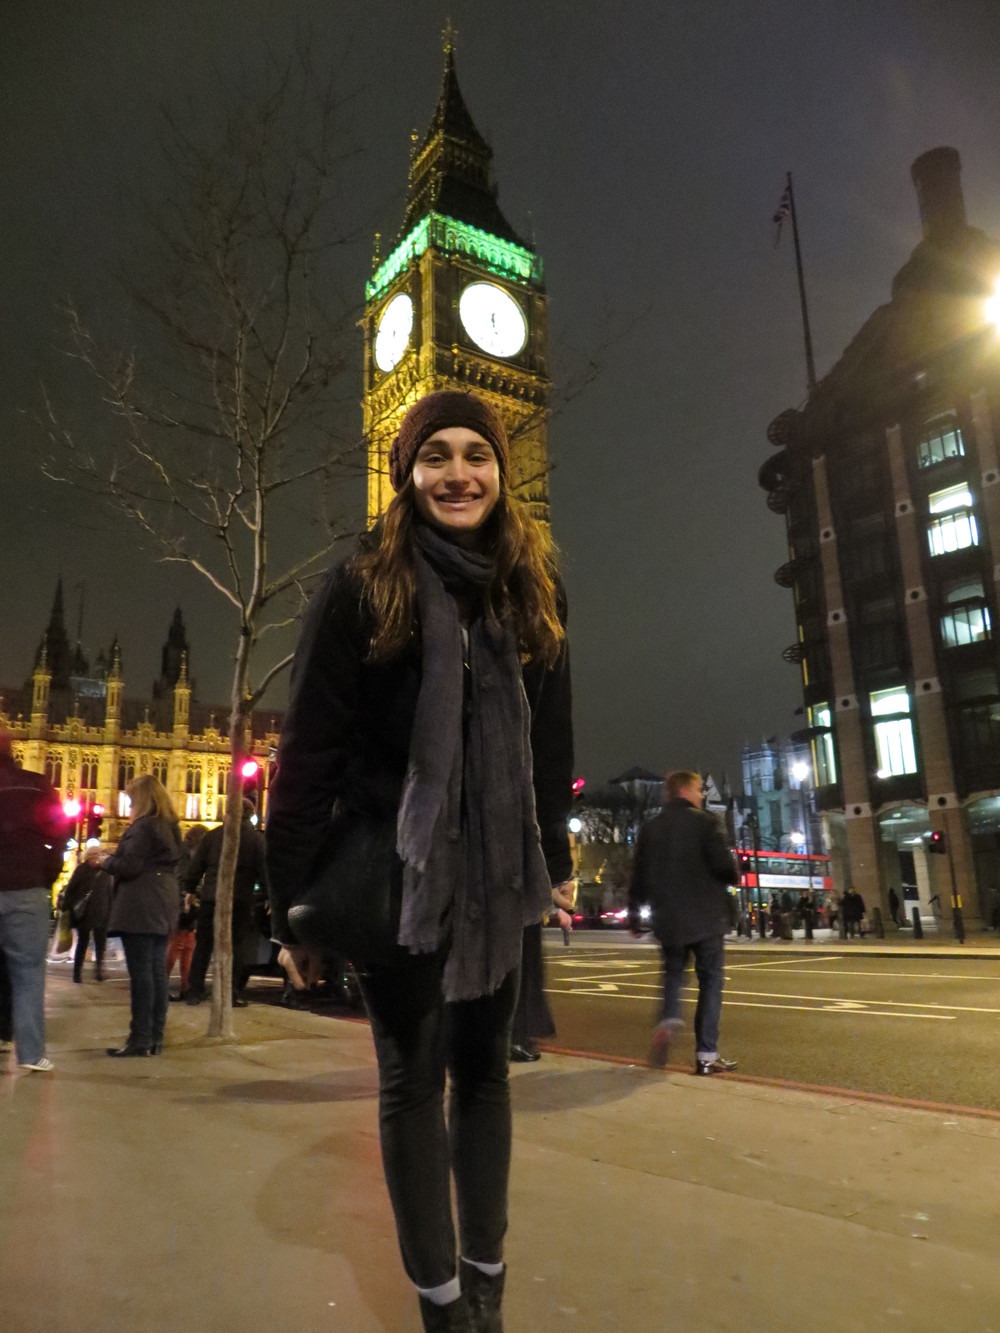 Obligatory picture with Big Ben, magnificent at night